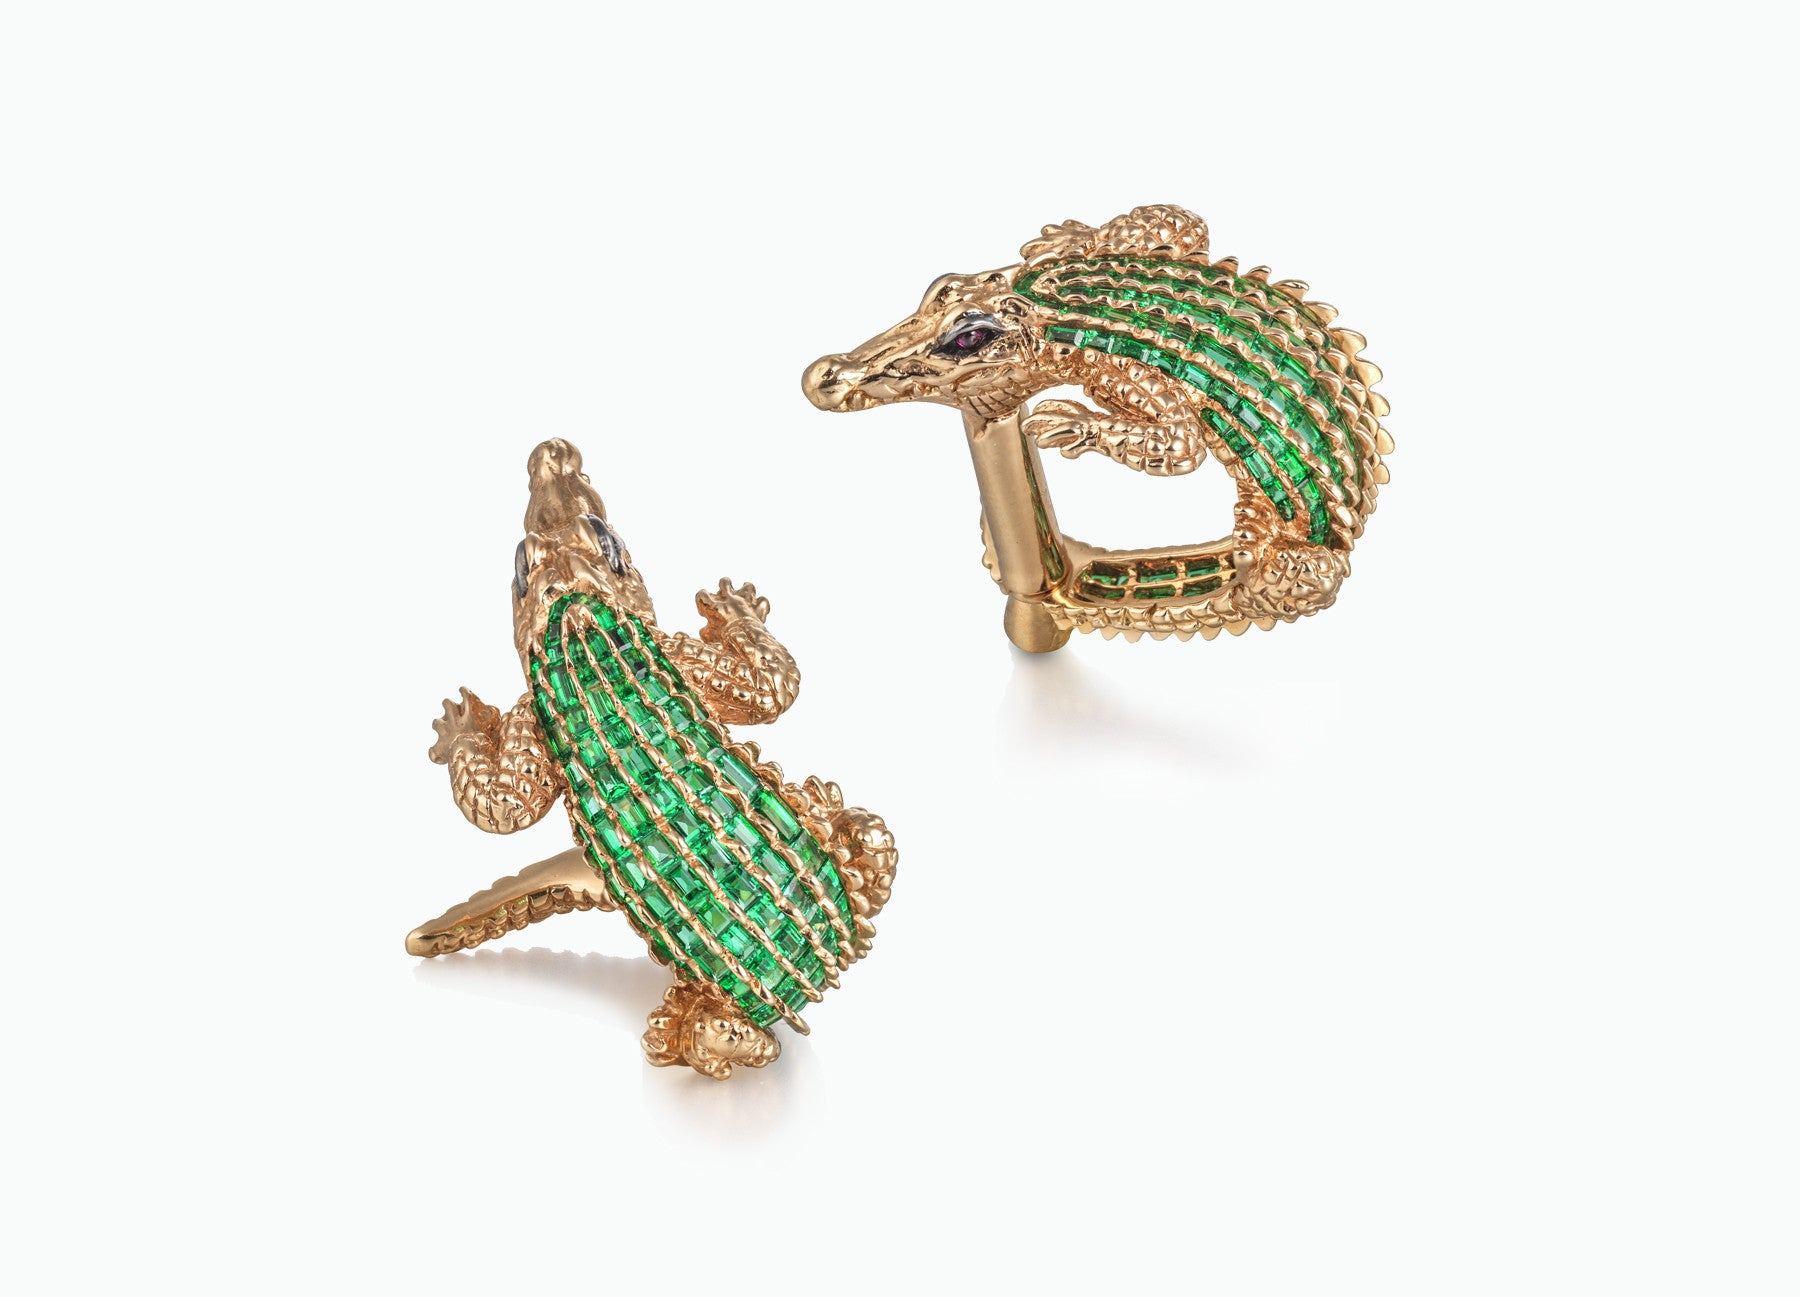 ONE OF A KIND CROCO CUFFLINKS